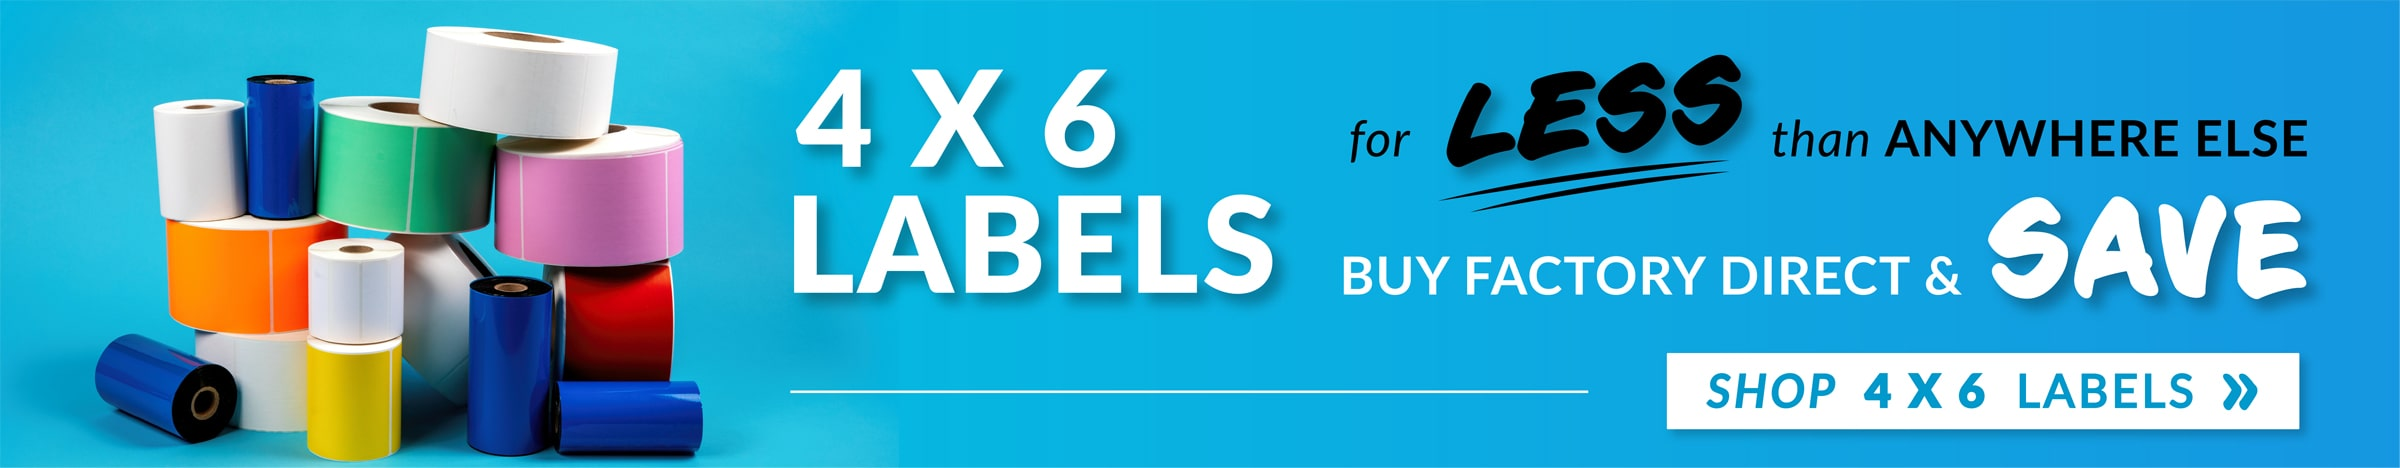 4x6 Labels for Less than ANYWHERE ELSE